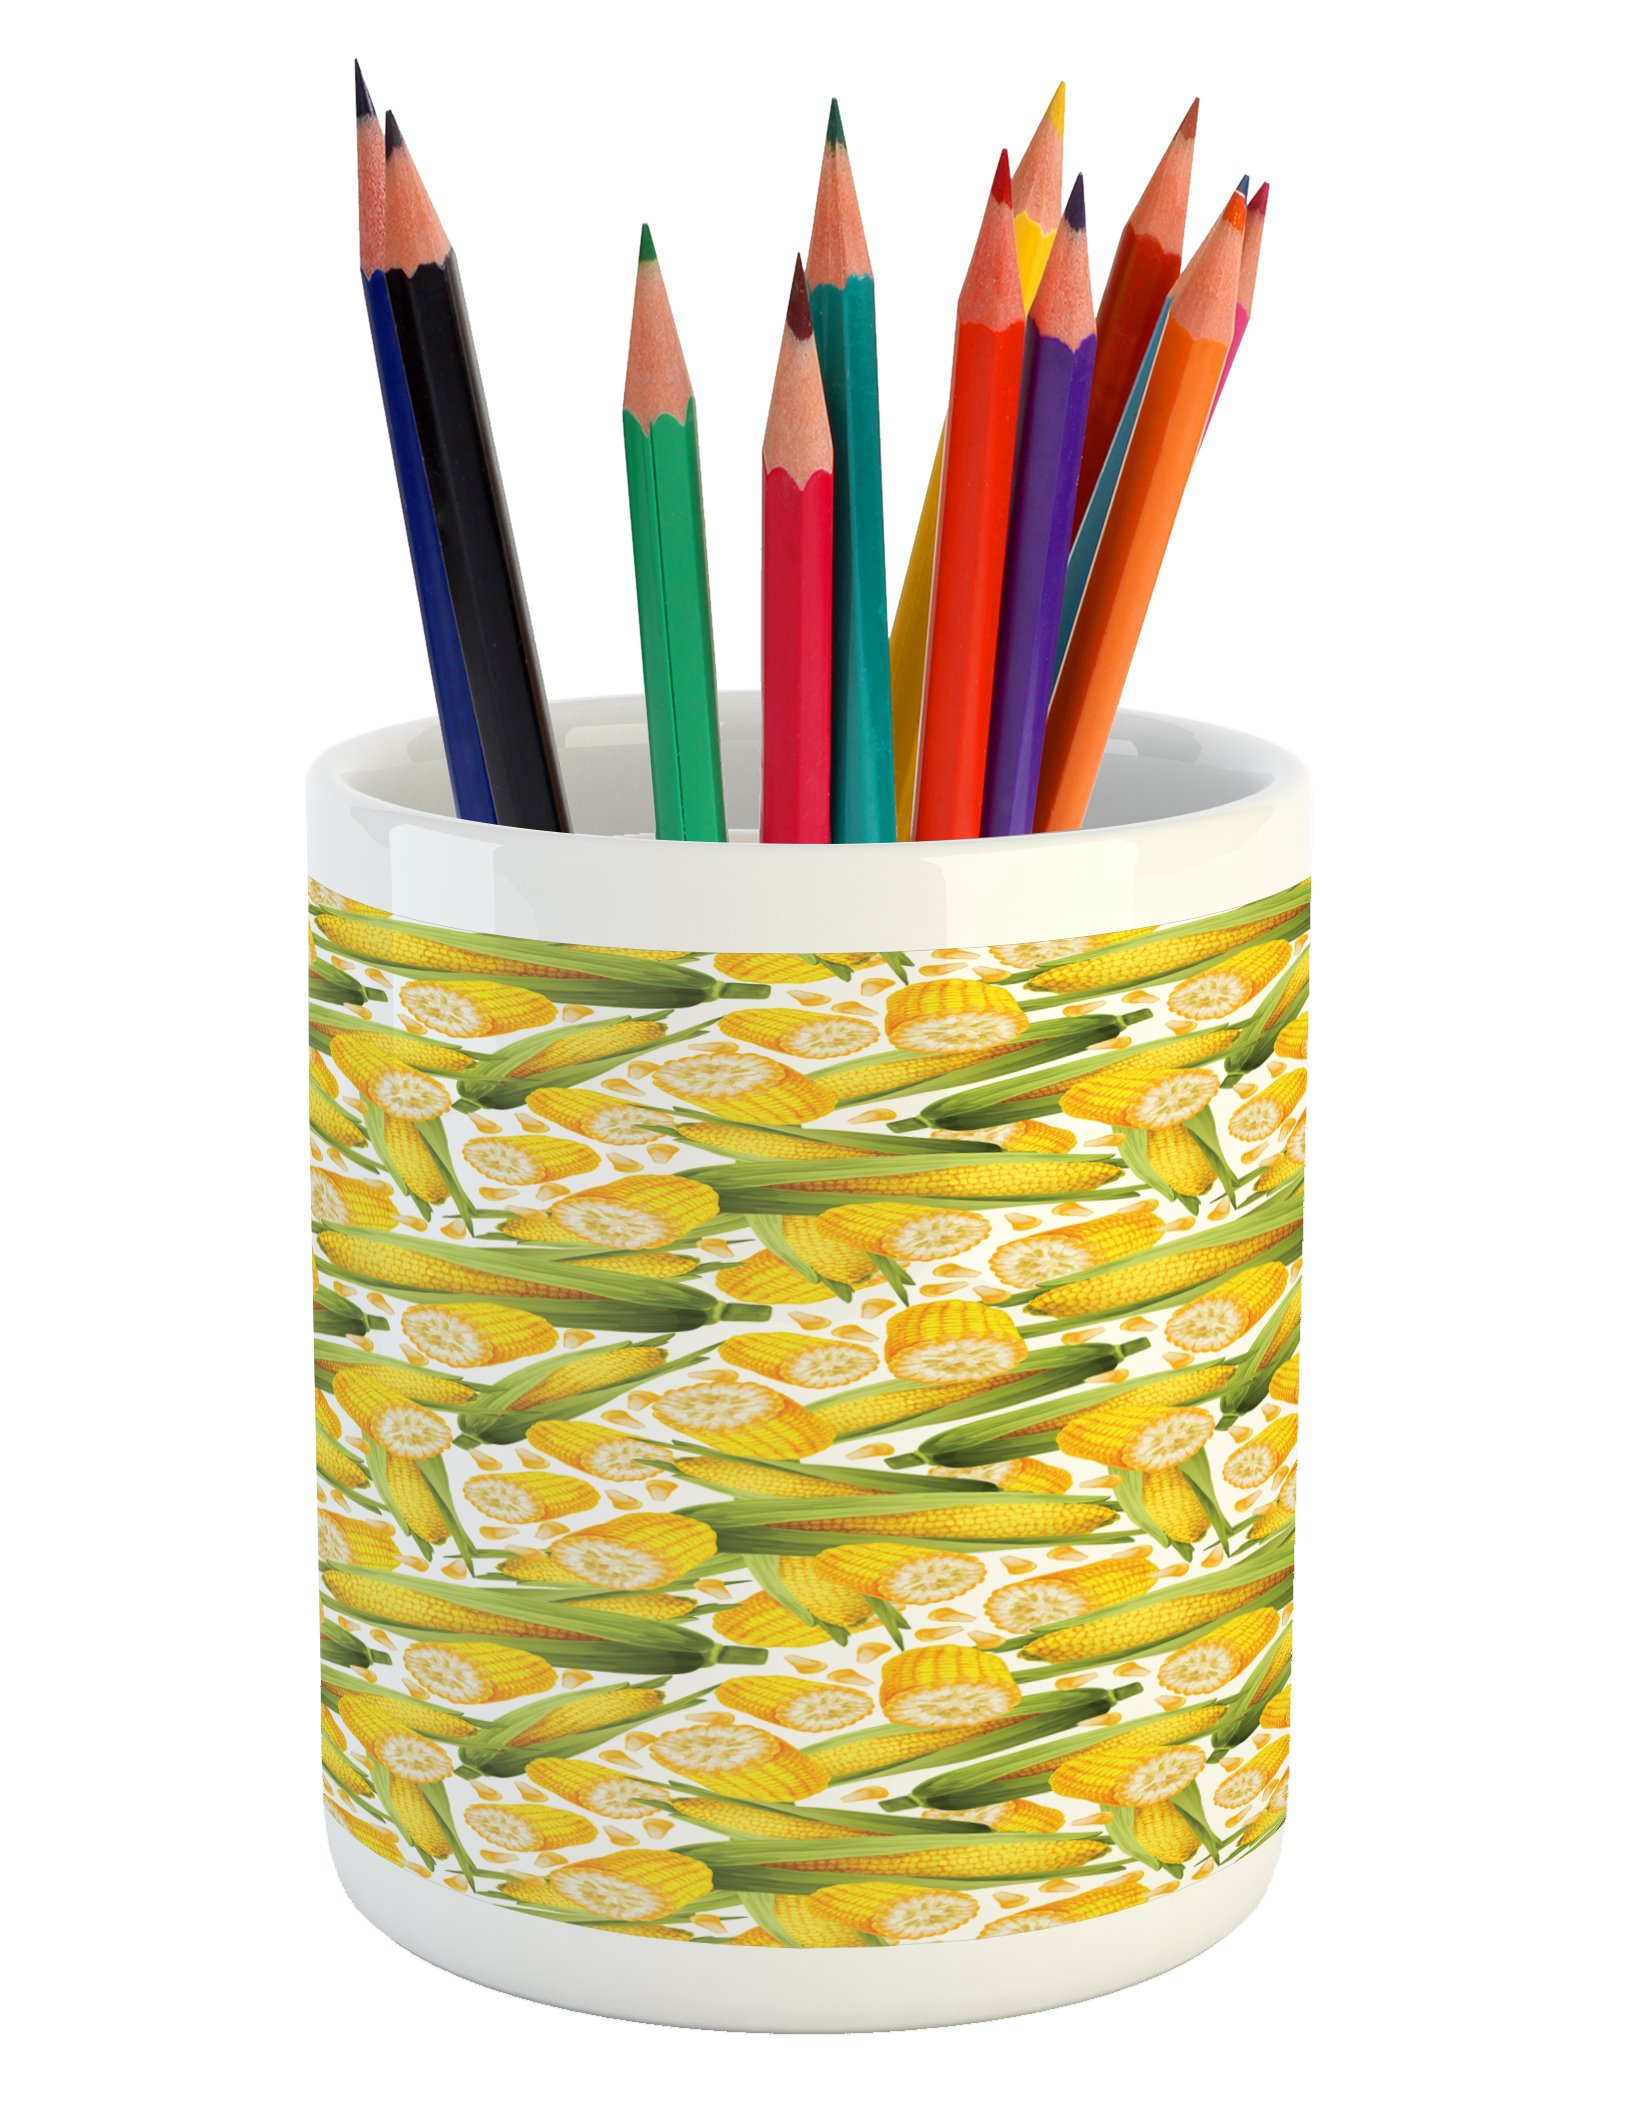 Ambesonne Corn Pencil Pen Holder, Vegetable Organic Food Realistic Illustration Yellow Corn Stalks Agriculture, Printed Ceramic Pencil Pen Holder for Desk Office Accessory, Yellow Green White